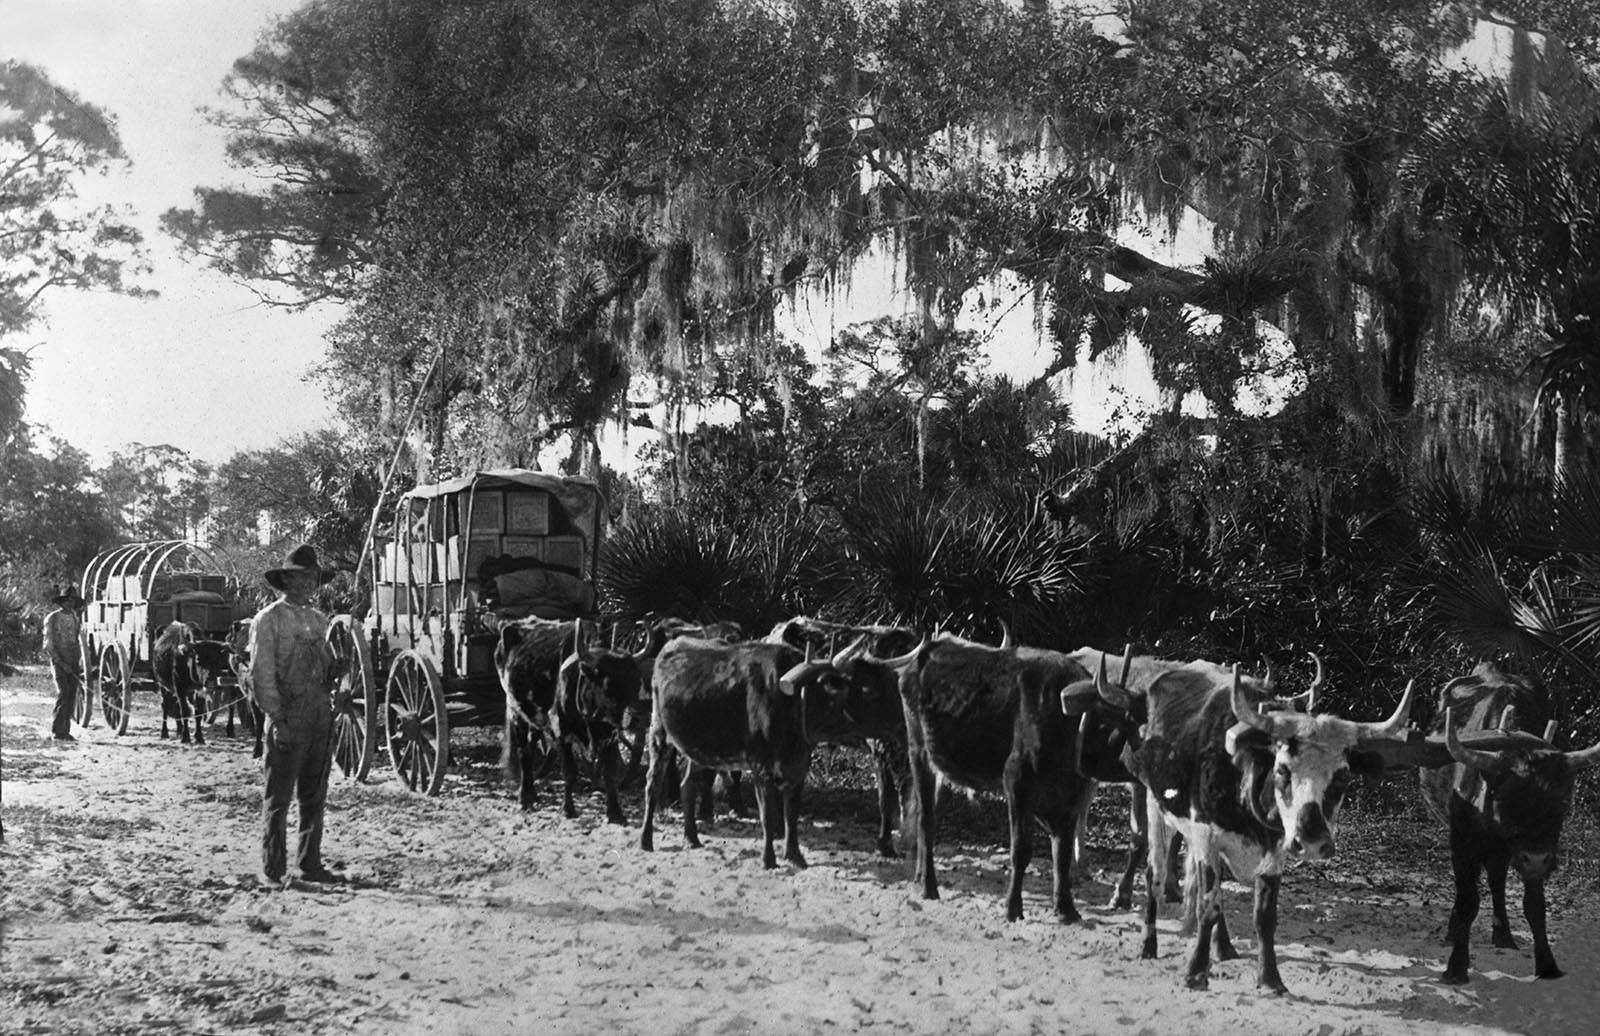 historic photo of oranges being hauled in wagons